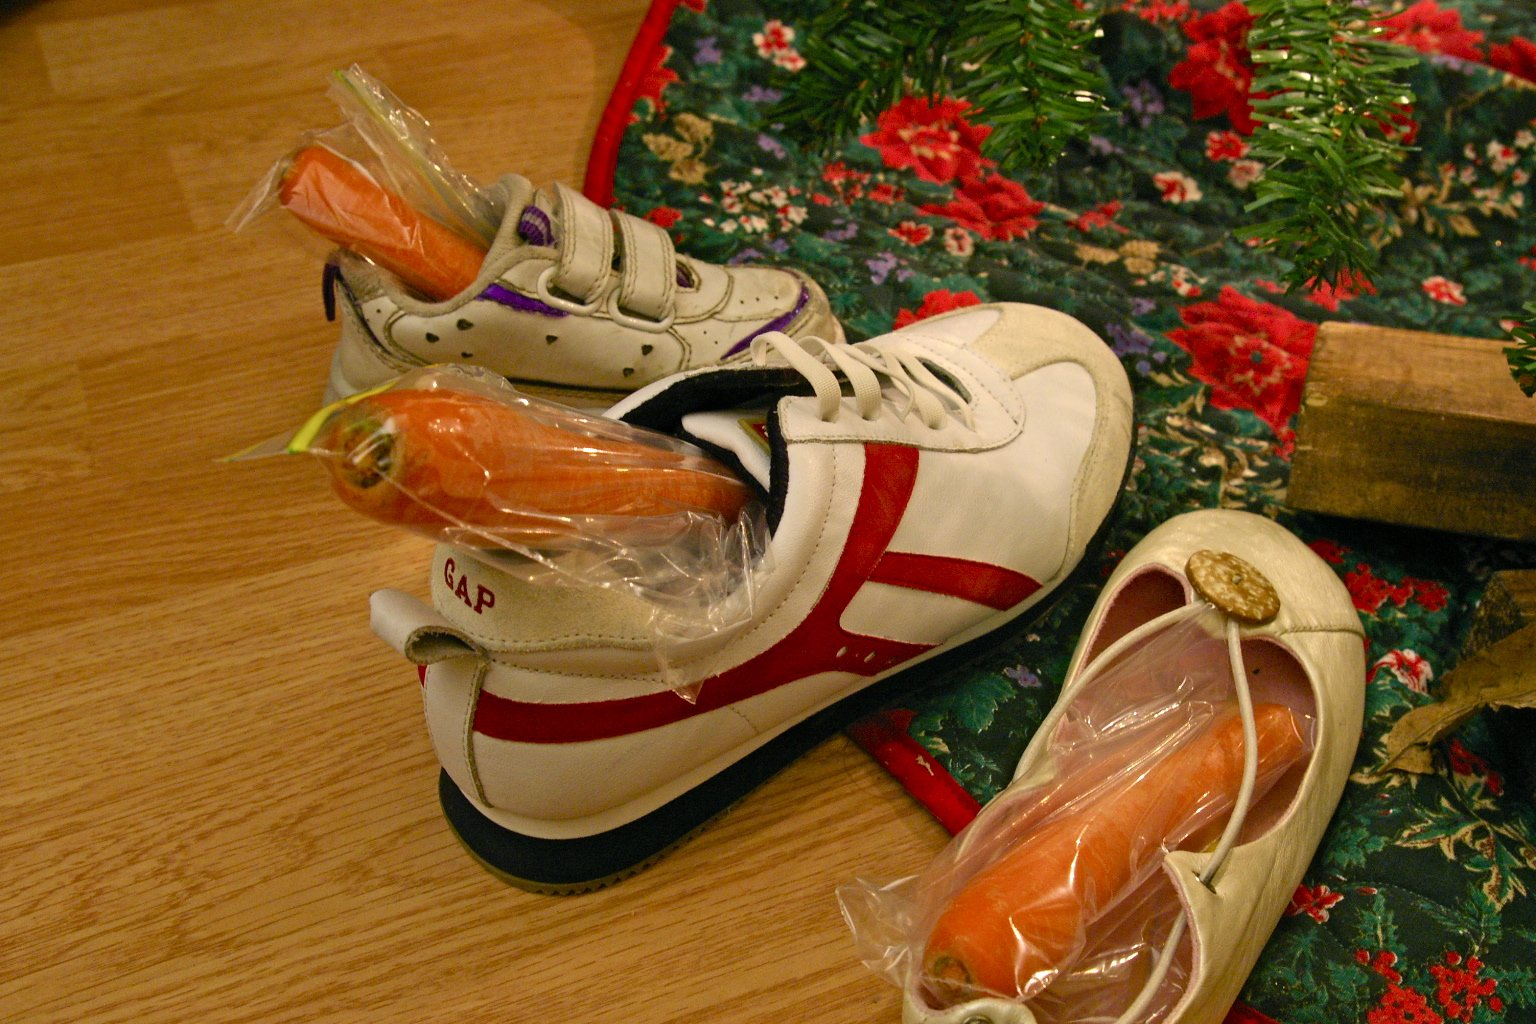 Sinterklaas, place your shoe